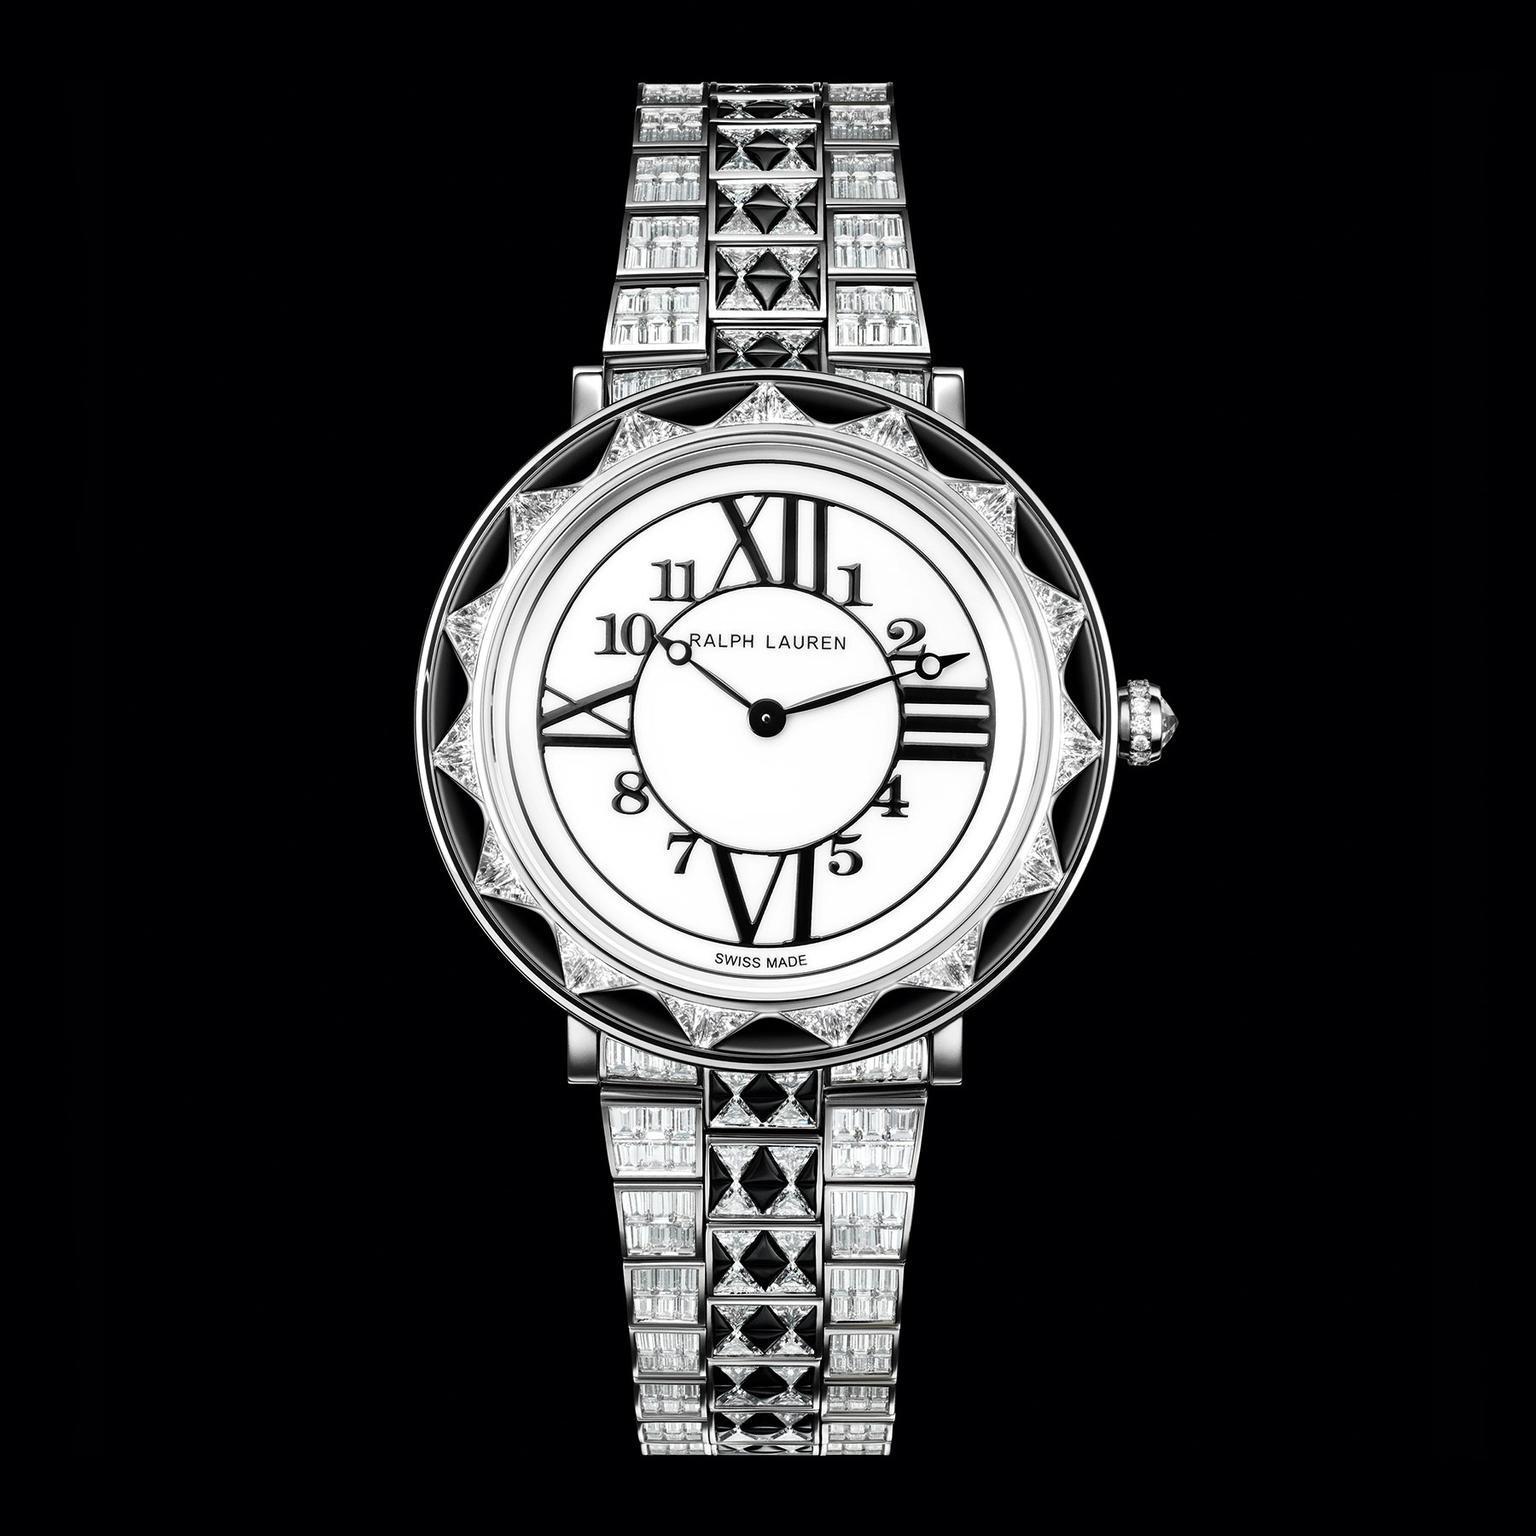 Ralph Lauren RL888 Deco Diamond watch